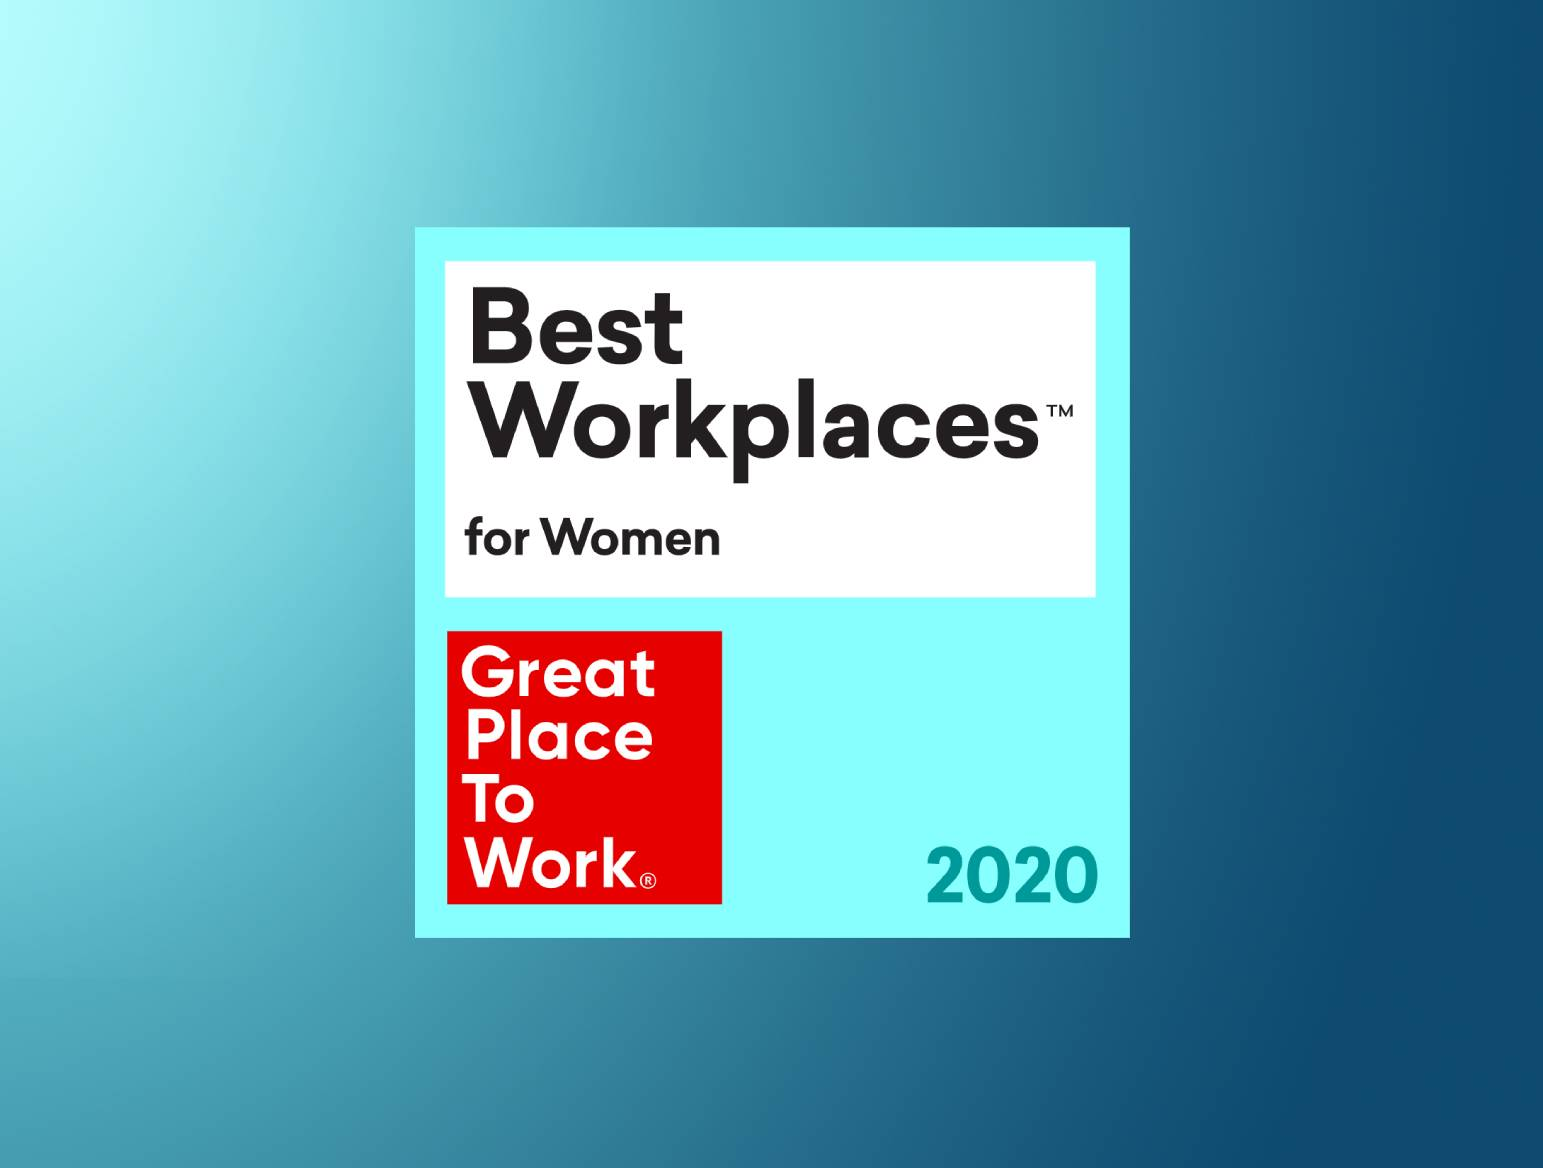 Fractal rated in the Top 100 Best Workplaces for Women in 2020 by Great Place to Work® Institute